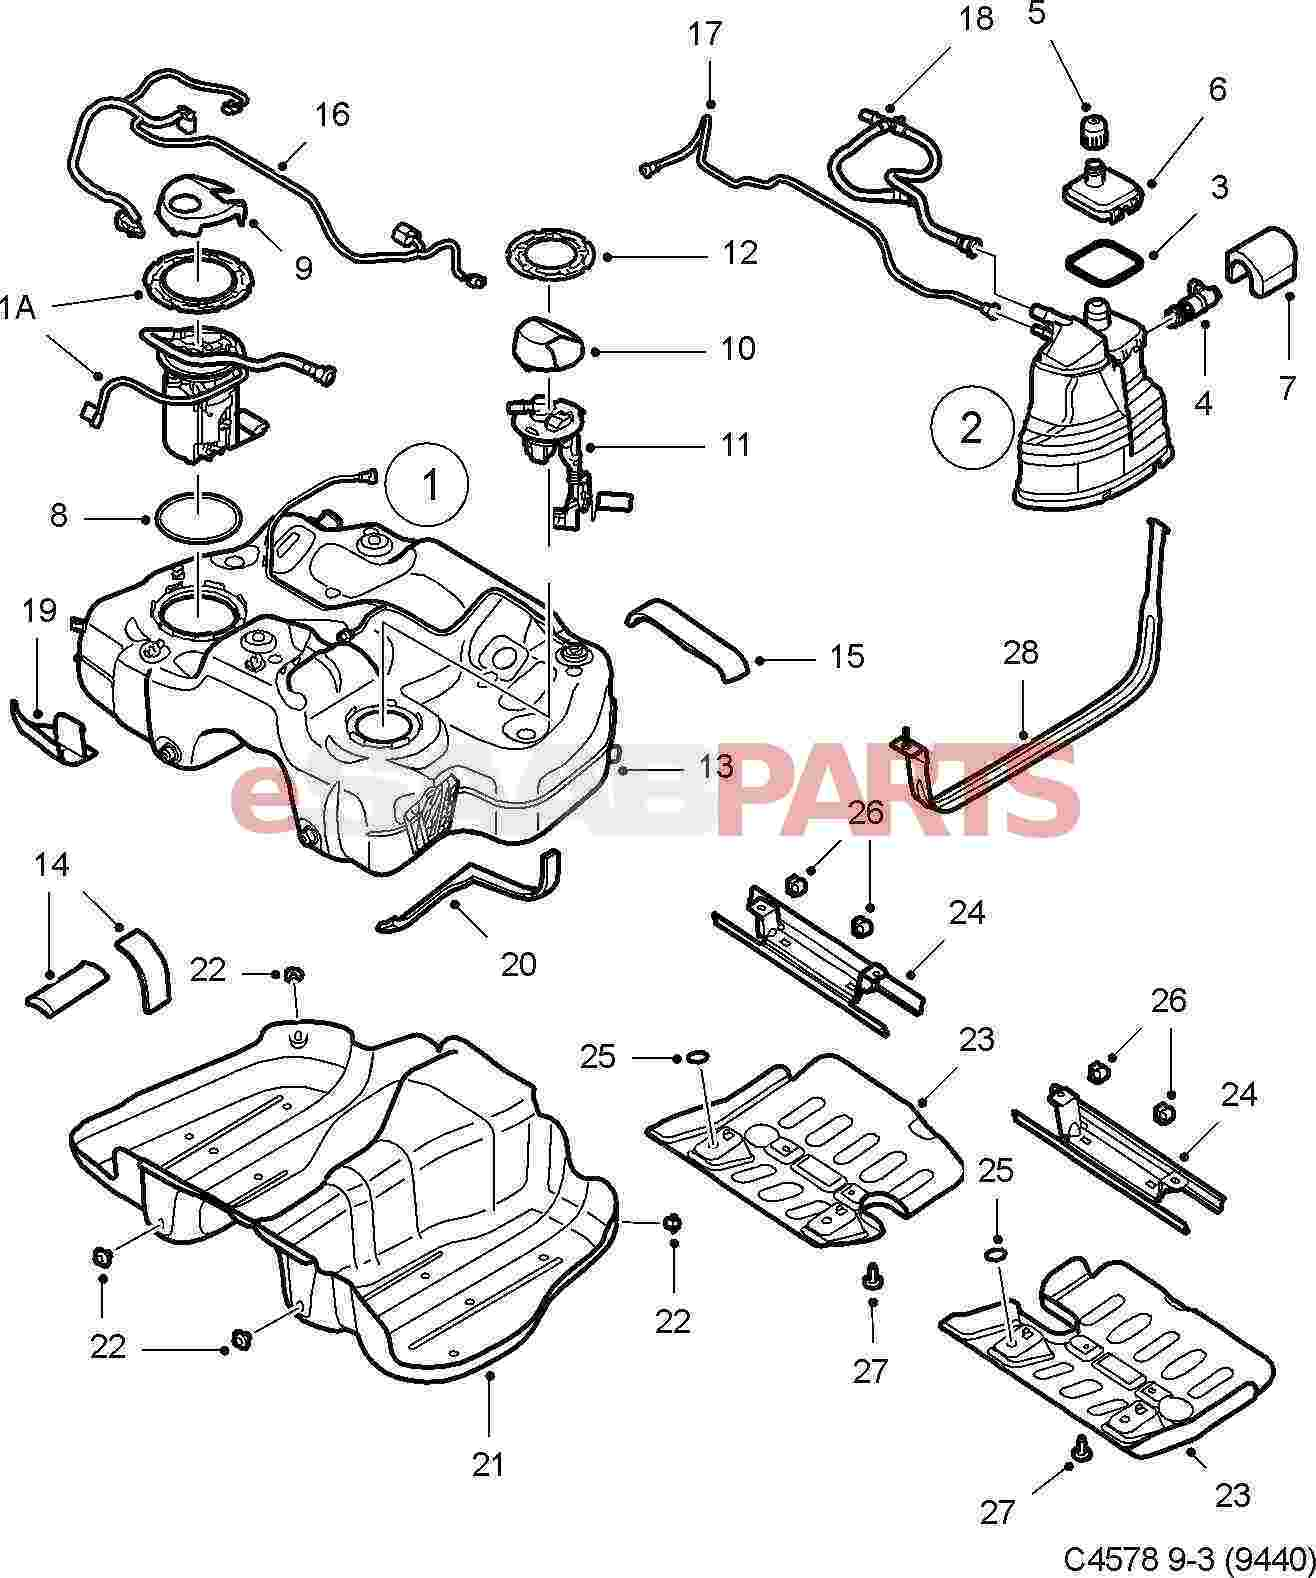 2004 saab 9 3 fuel system diagram owner manual \u0026 wiring diagram